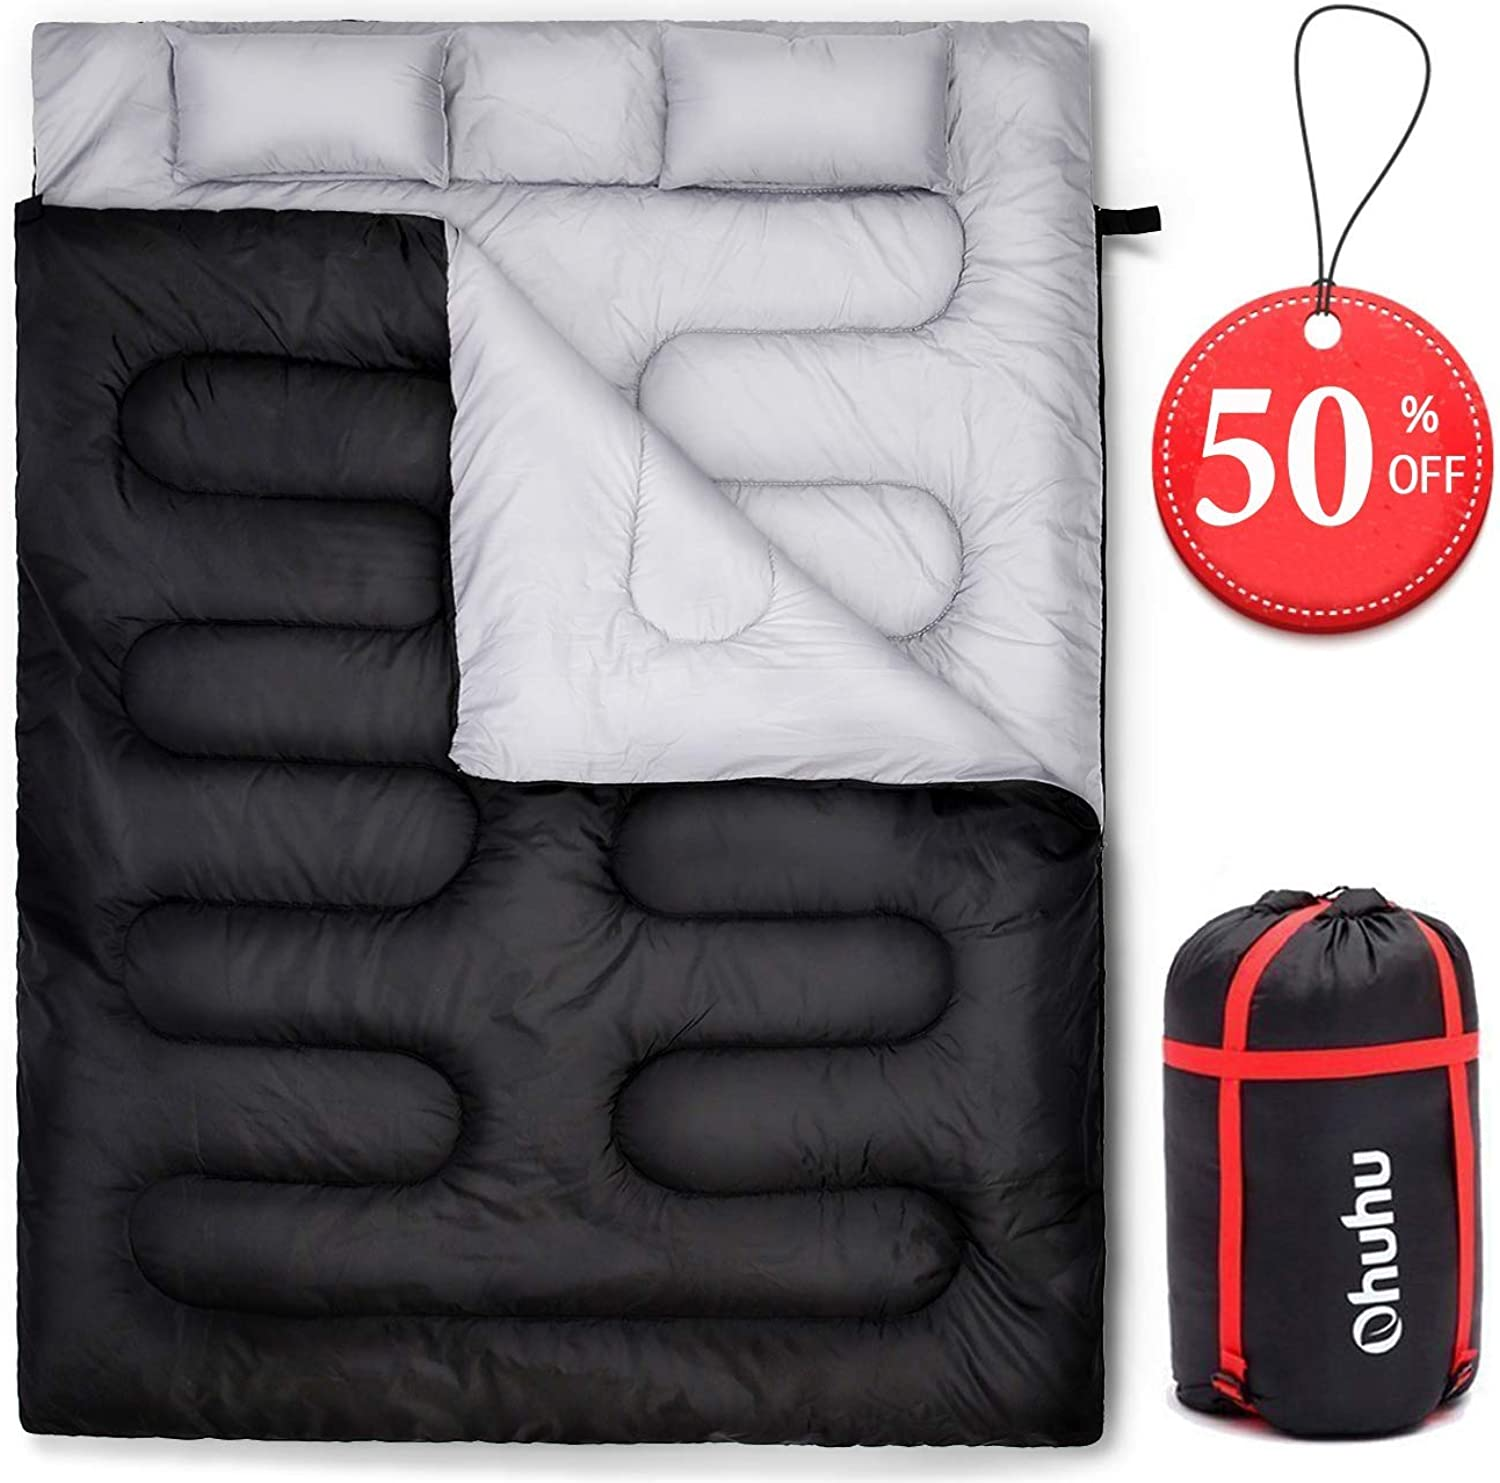 Ohuhu Double Sleeping Bag 2 Pillows, 2 Person Adult Sleeping Bags Camping, Backpacking, Hiking